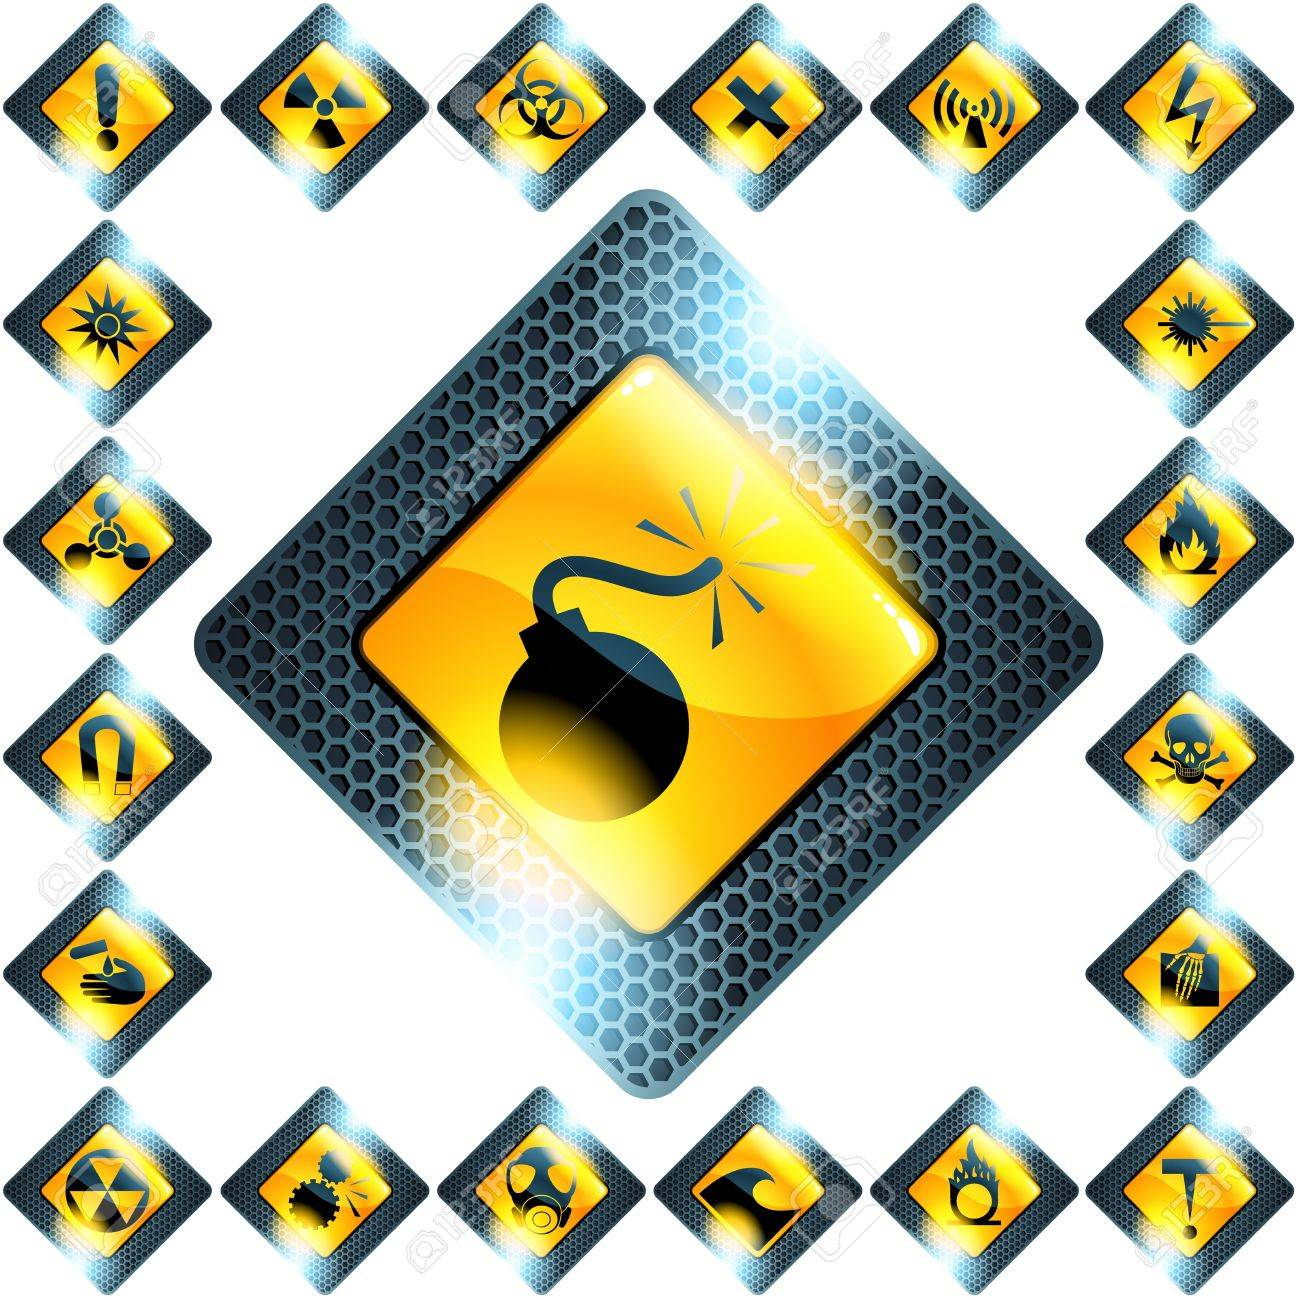 Collection of glass and metal hazard symbols. Graphics are grouped and in several layers for easy editing. The file can be scaled to any size. Stock Vector - 9825509